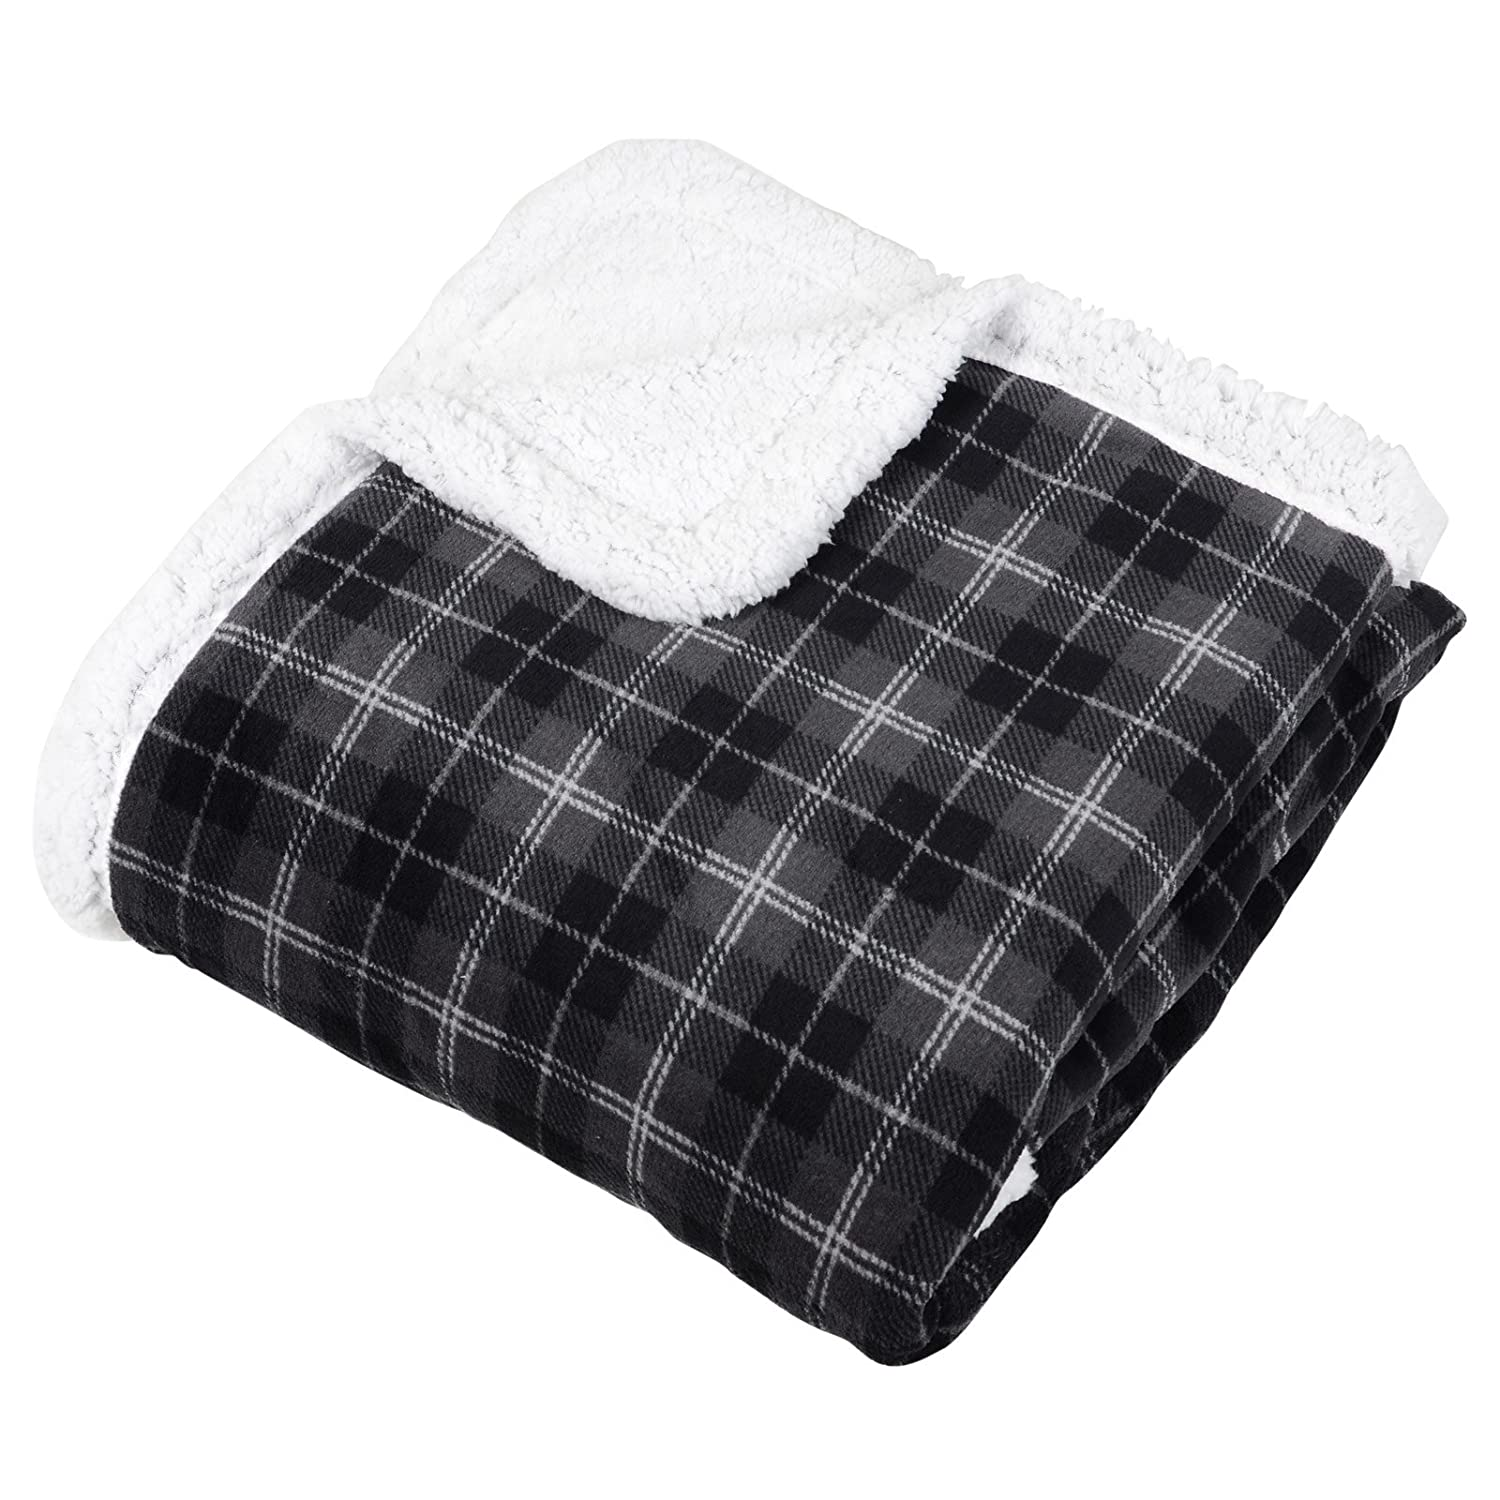 Micro-Pro Grey/Black Tartan Check Fleece Blanket Soft Sherpa Sofa Bed Throw 130x160cm XSS